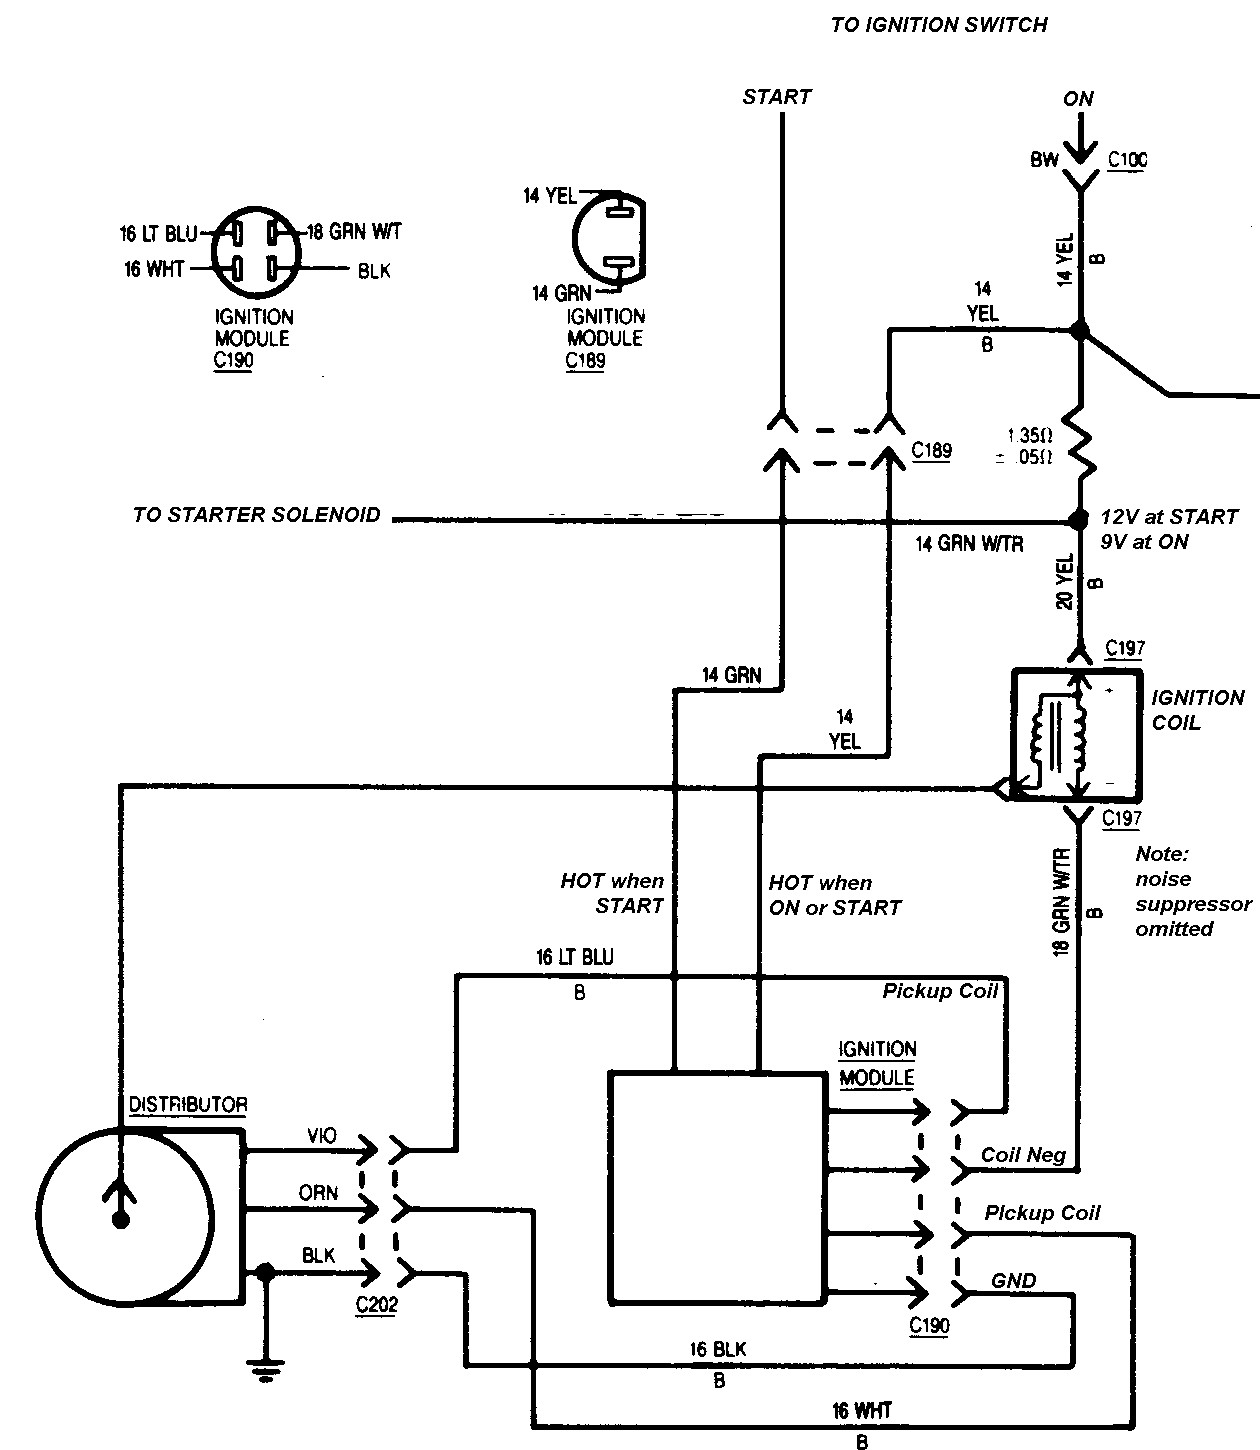 Ign_wiring u 94a u wiring diagram 1966 mustang wiring diagram \u2022 wiring lh33wp003a wiring diagram at gsmx.co